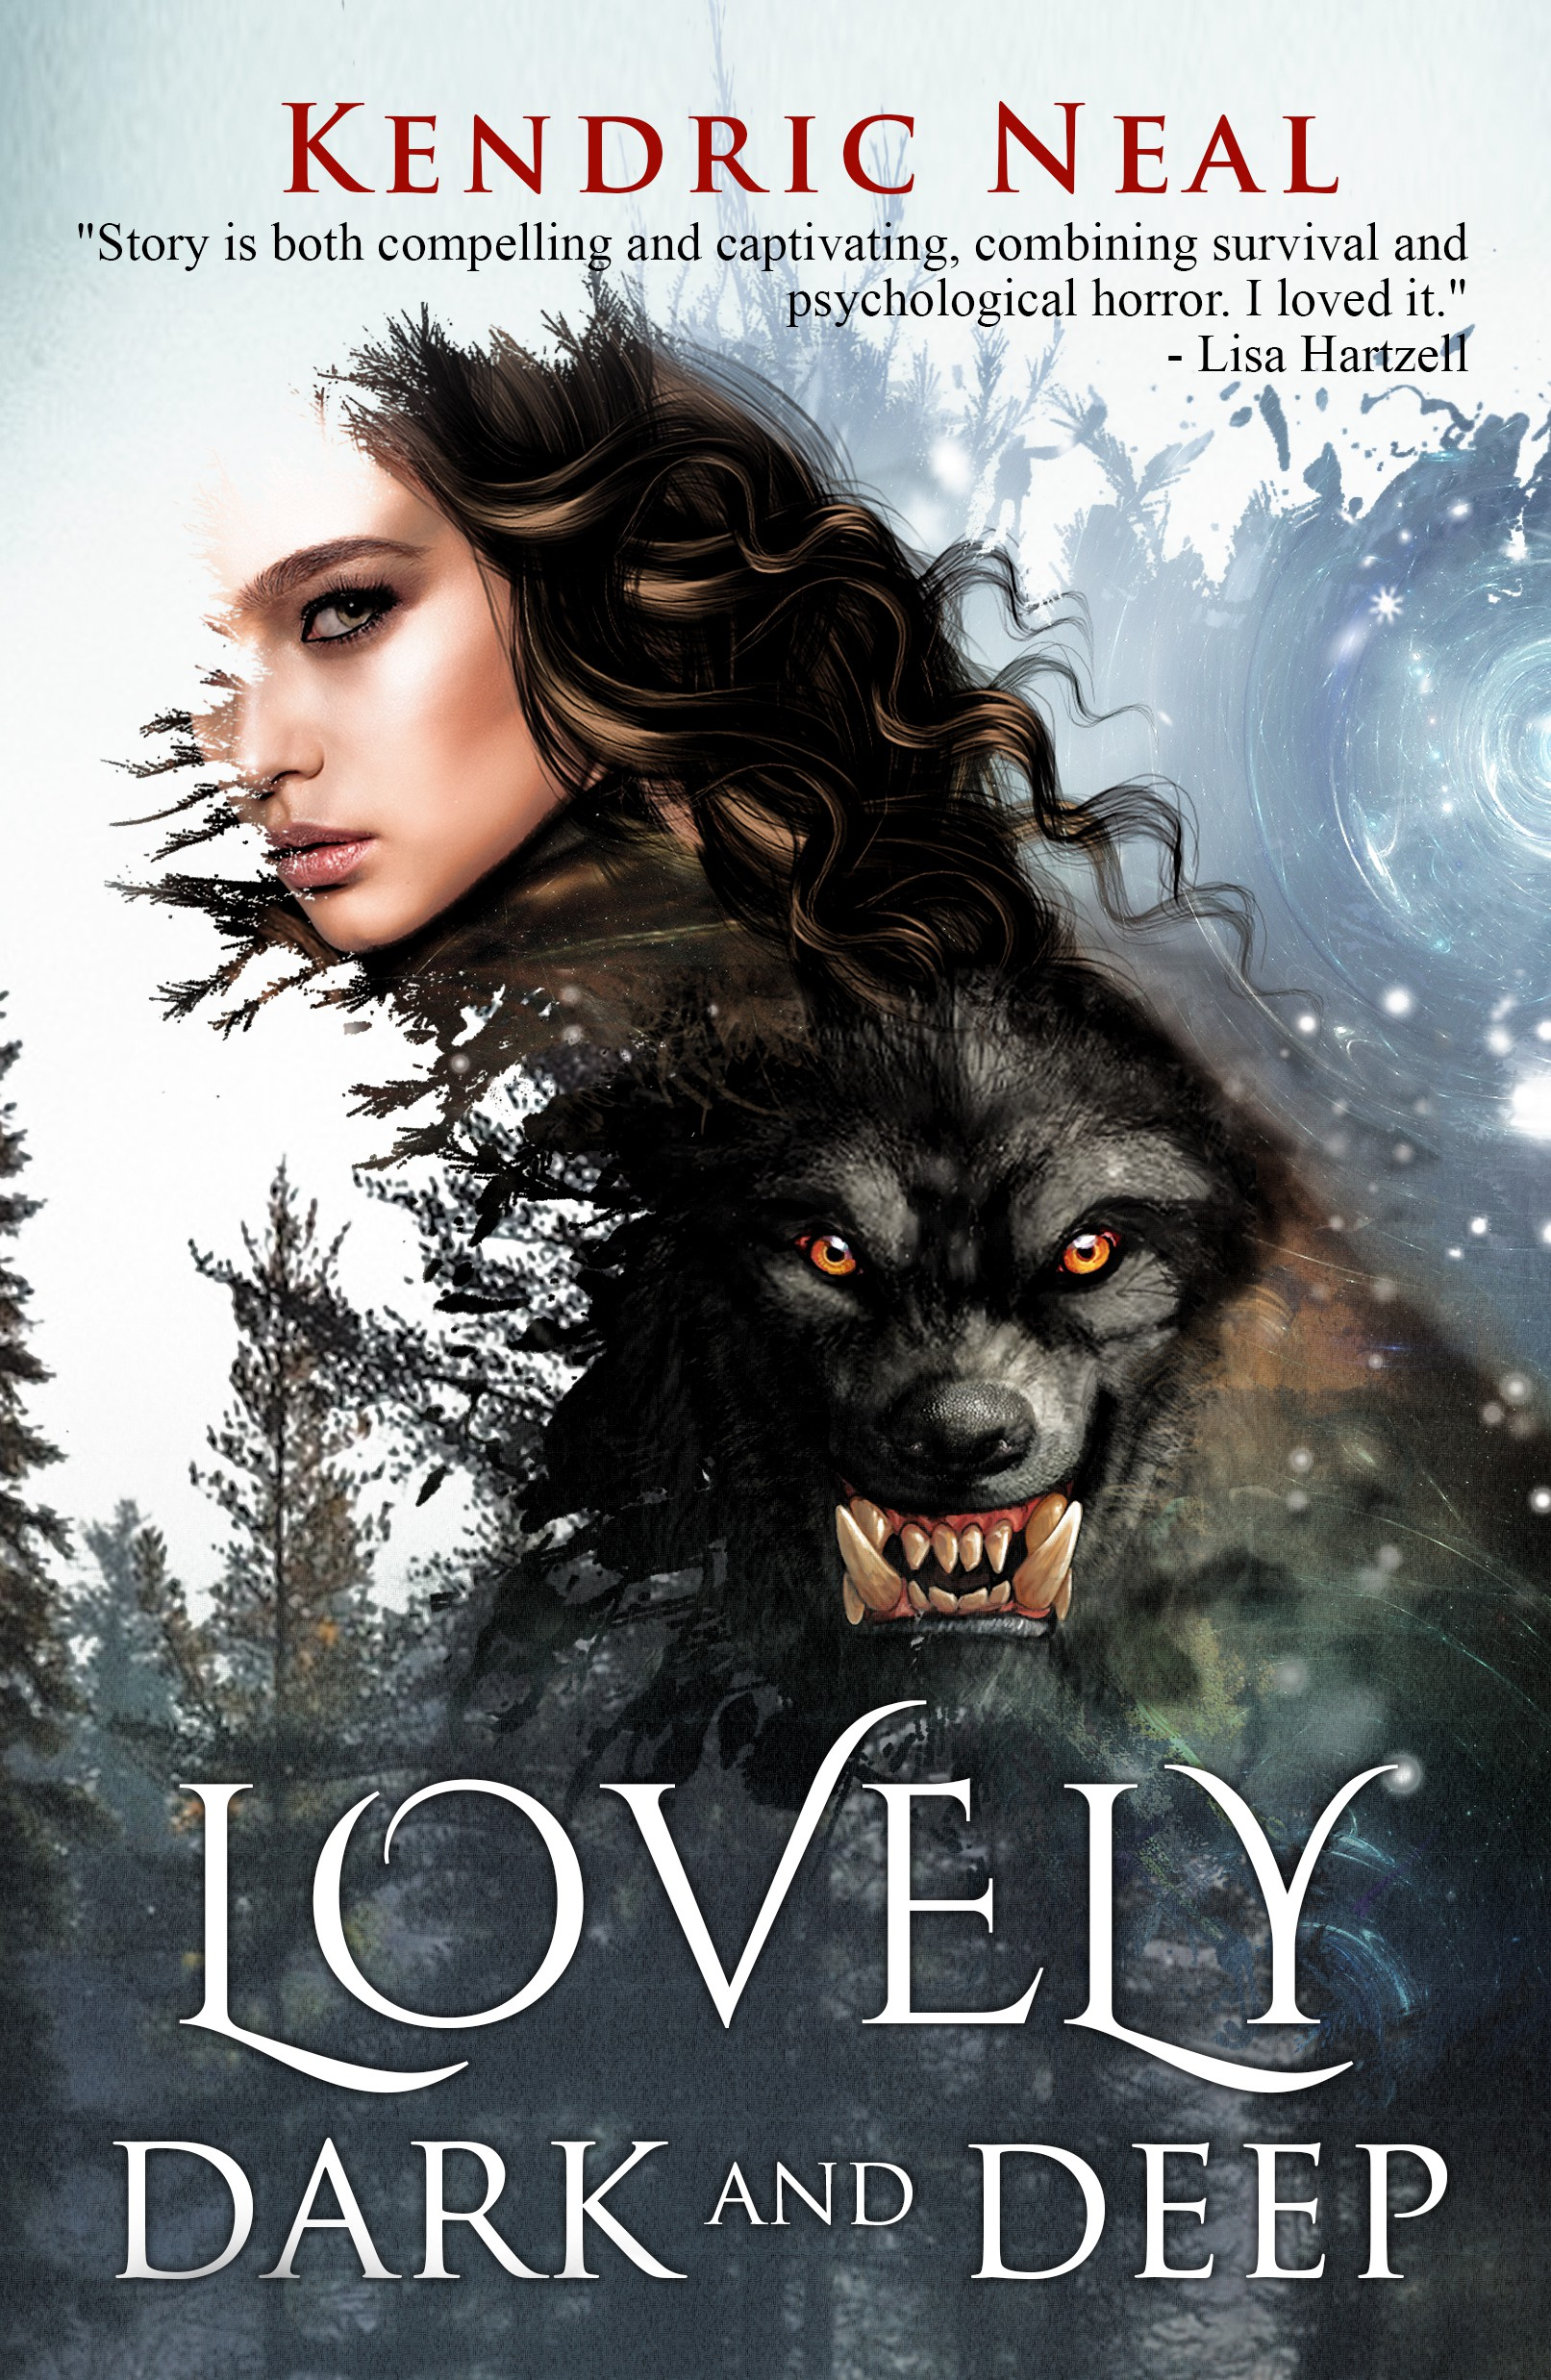 Psychological Horror book with demon and fantasy imagery